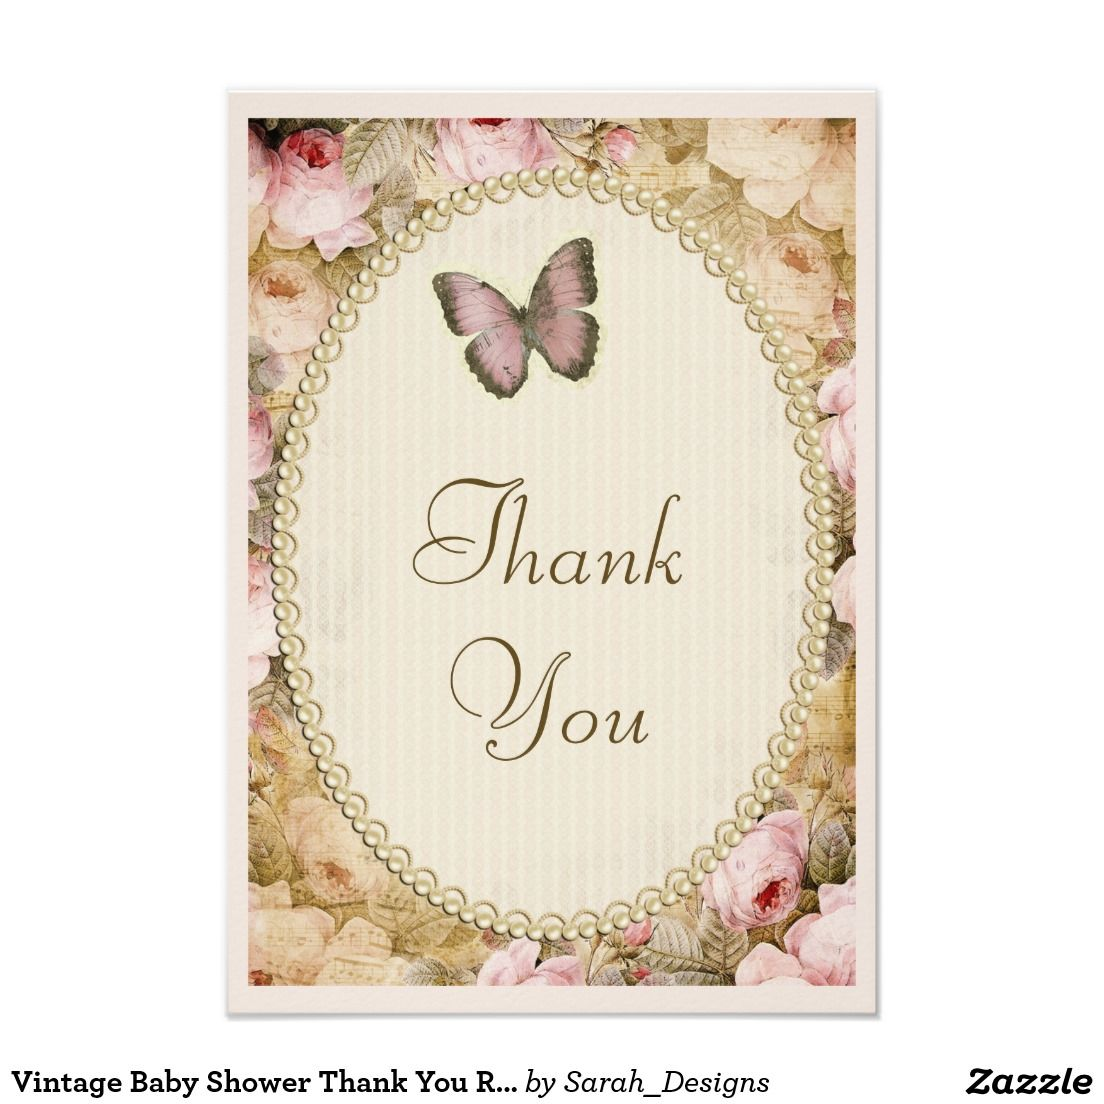 Vintage Baby Shower Thank You Roses Butterfly Card